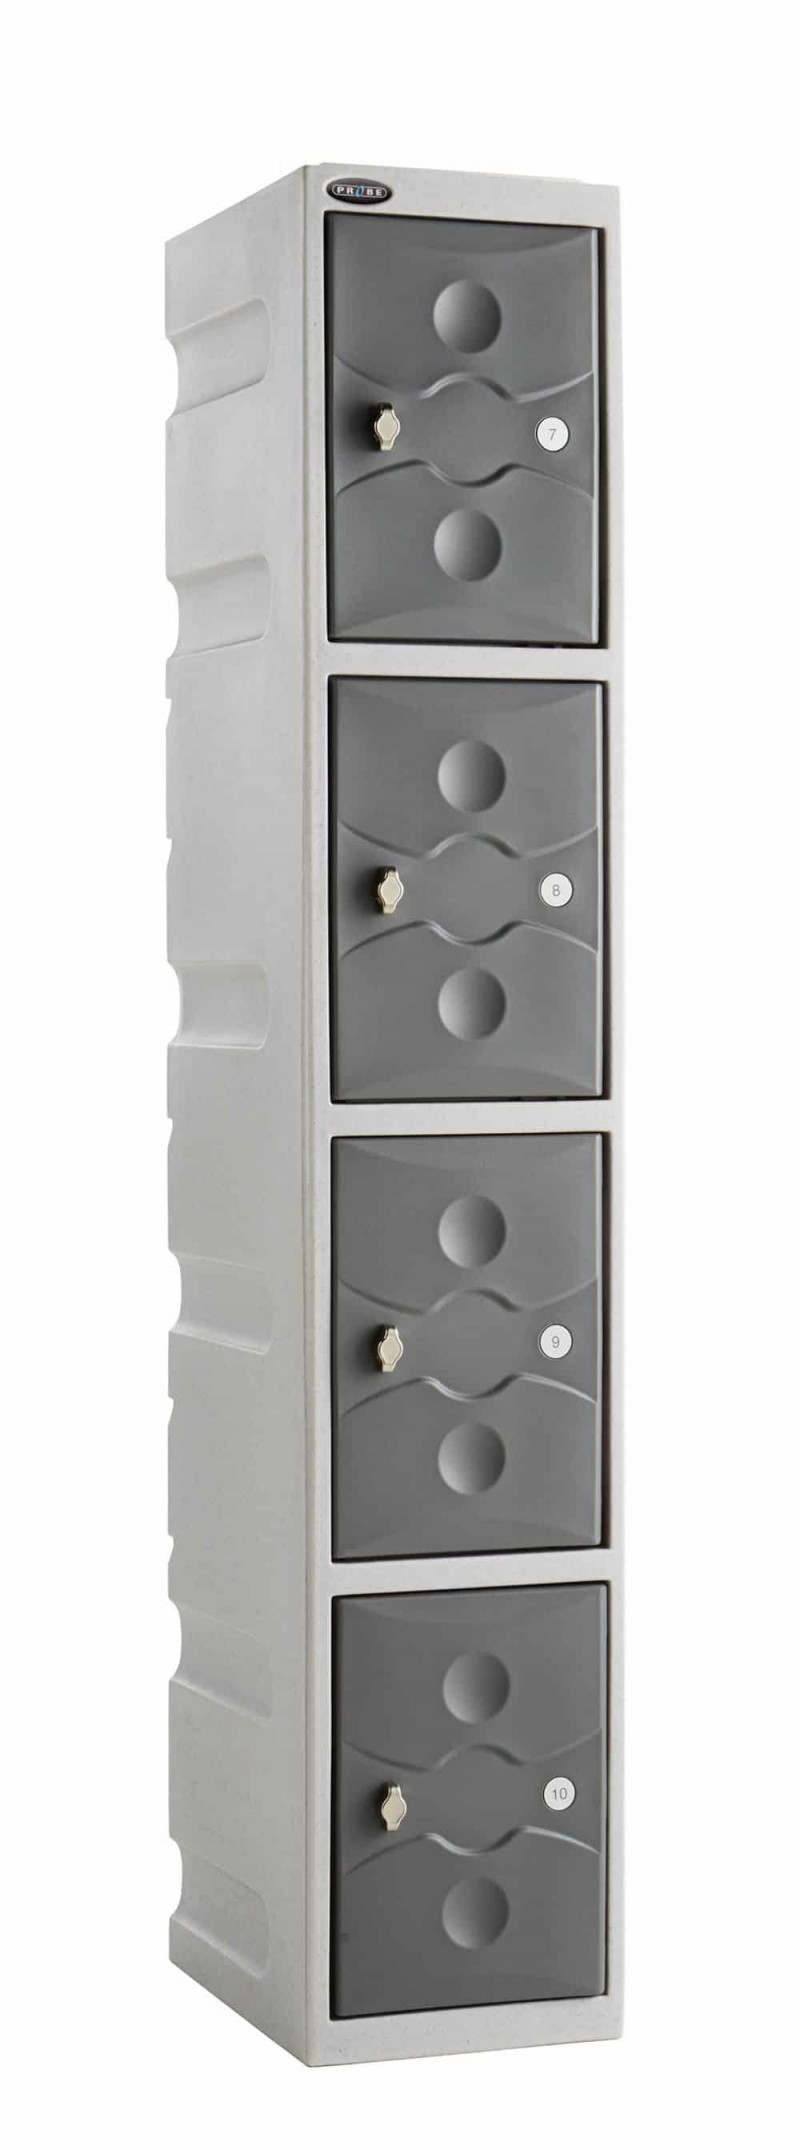 Probe Ultra Box Plastic Lockers - Four Compartments